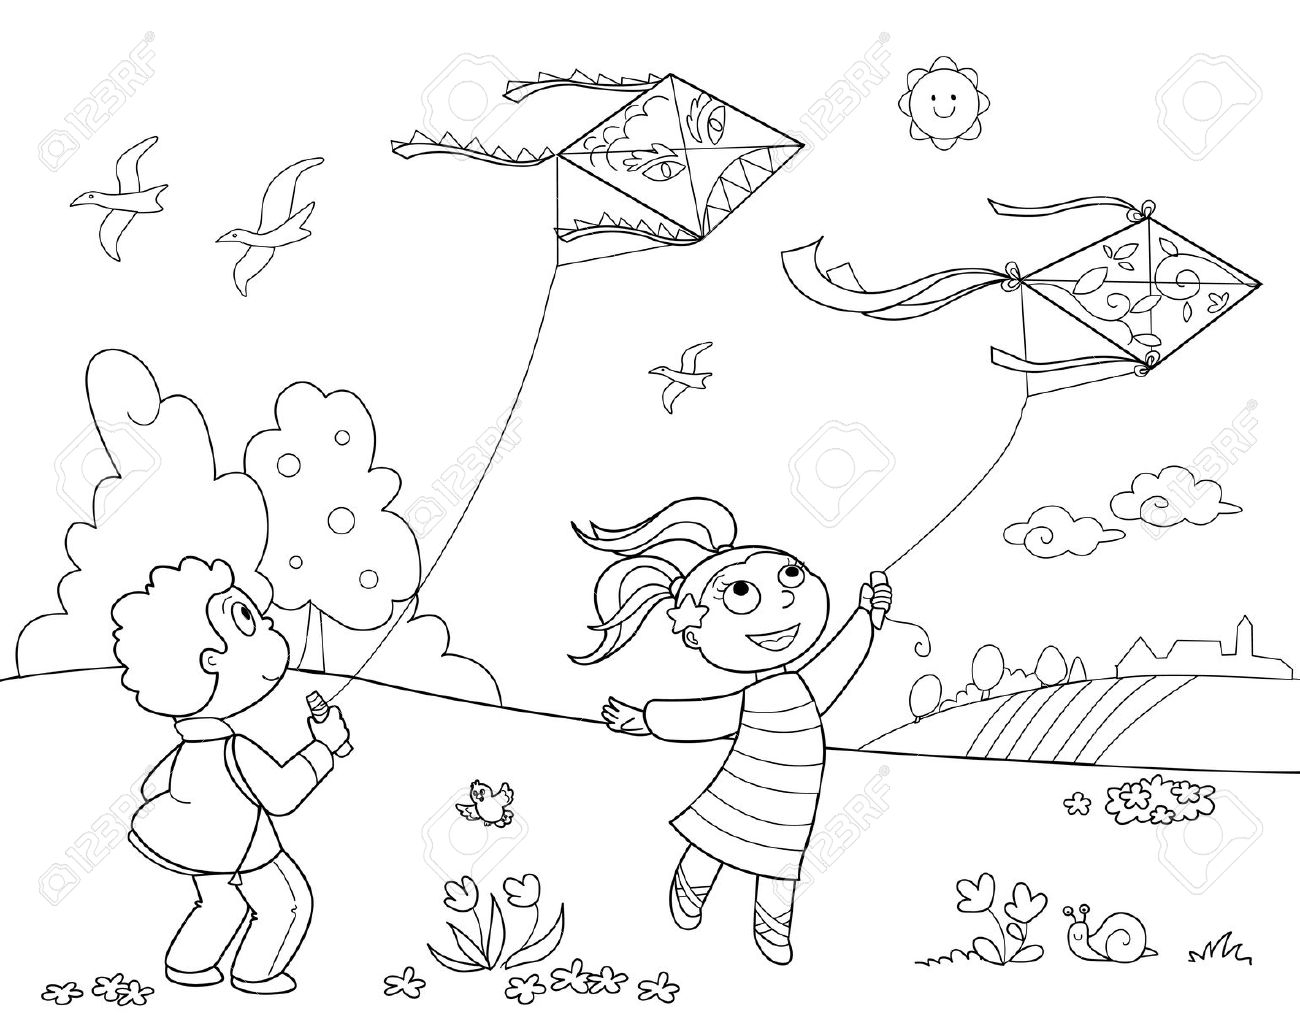 Children playing in the park clipart black and white 14.